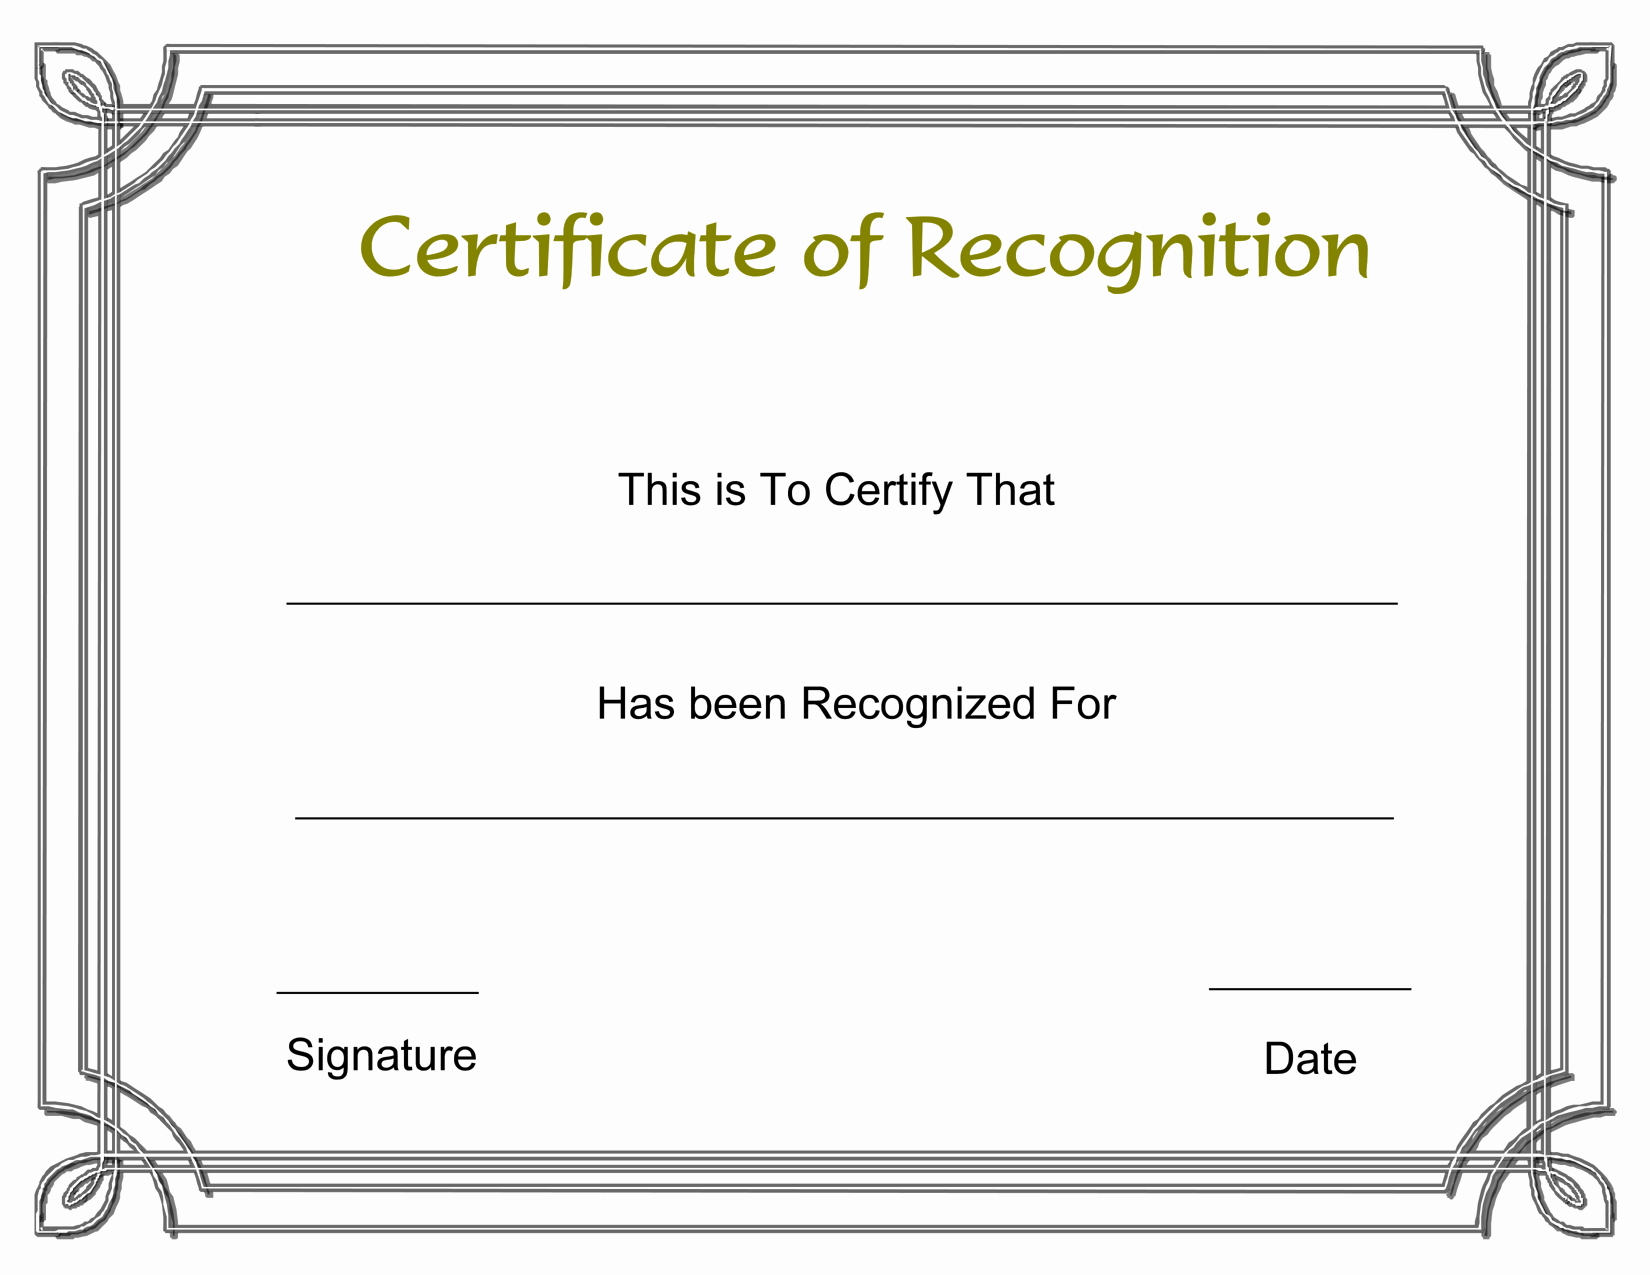 Certificate Of Recognition Template Fresh Template Free Award Certificate Templates and Employee